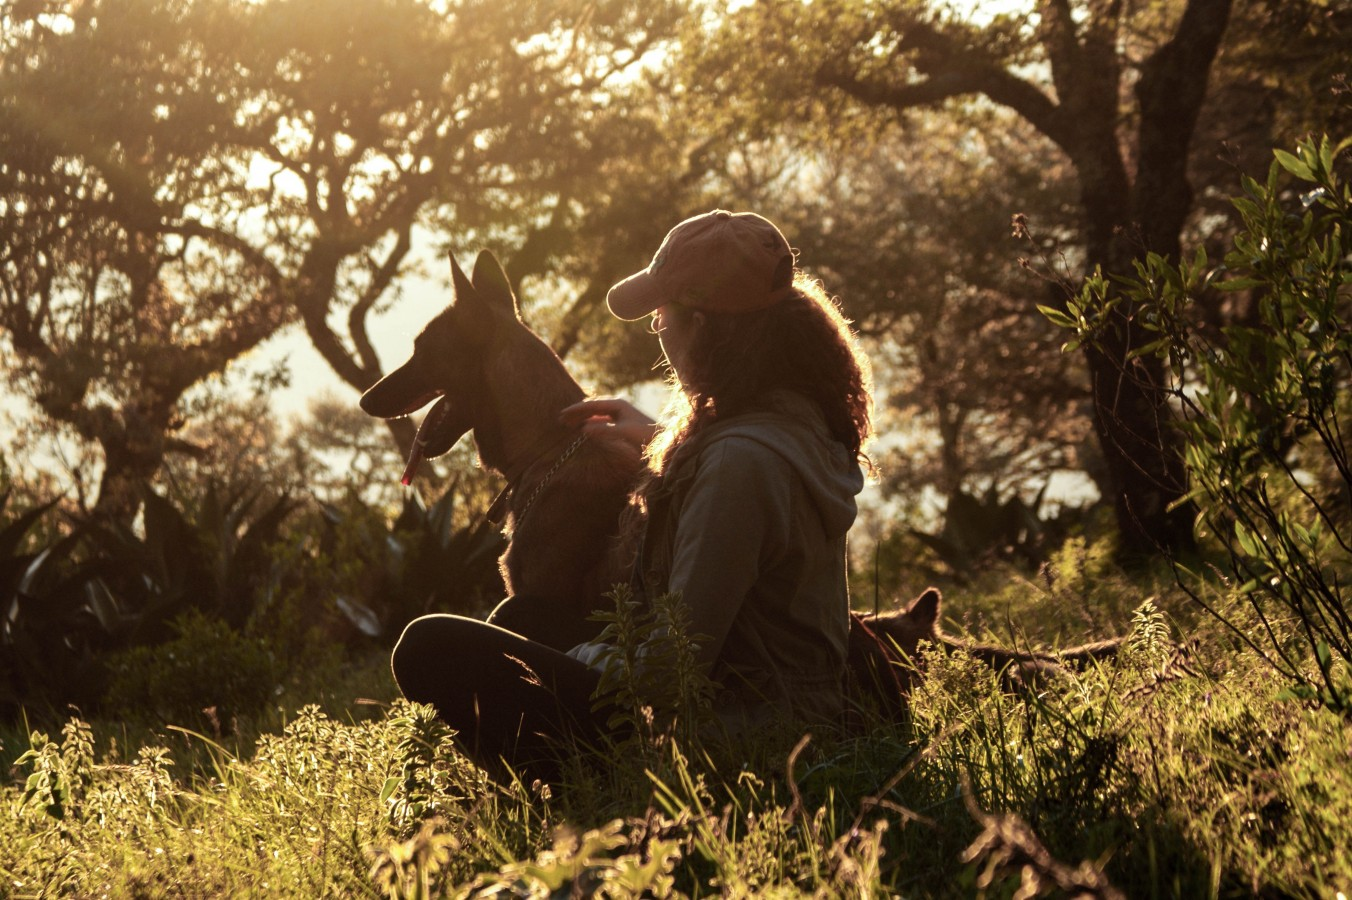 Sharing our lives with companion animals